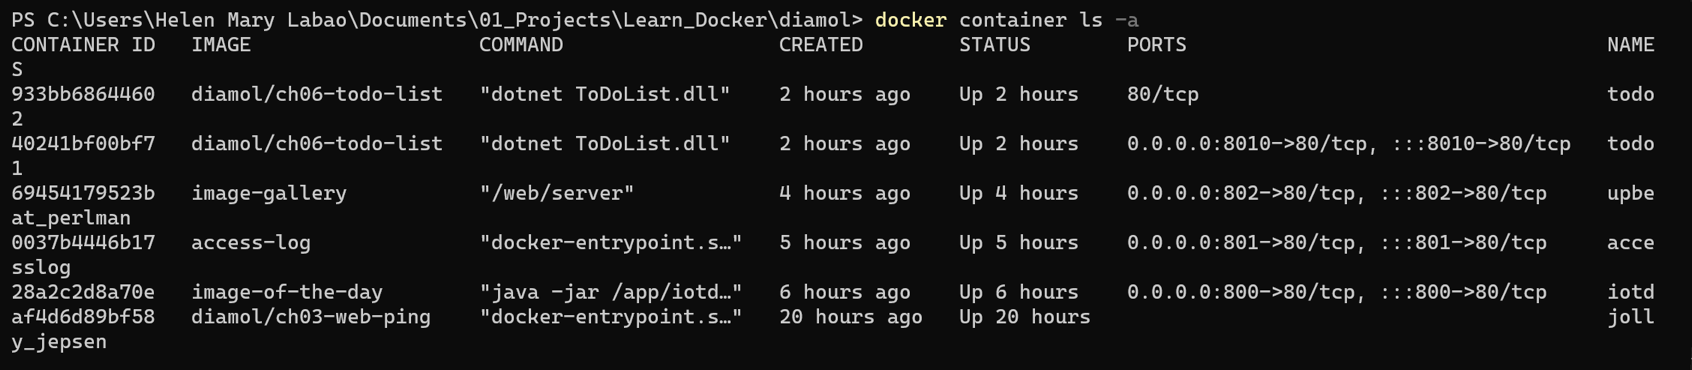 Listing Docker Containers After Removing Stray Containers